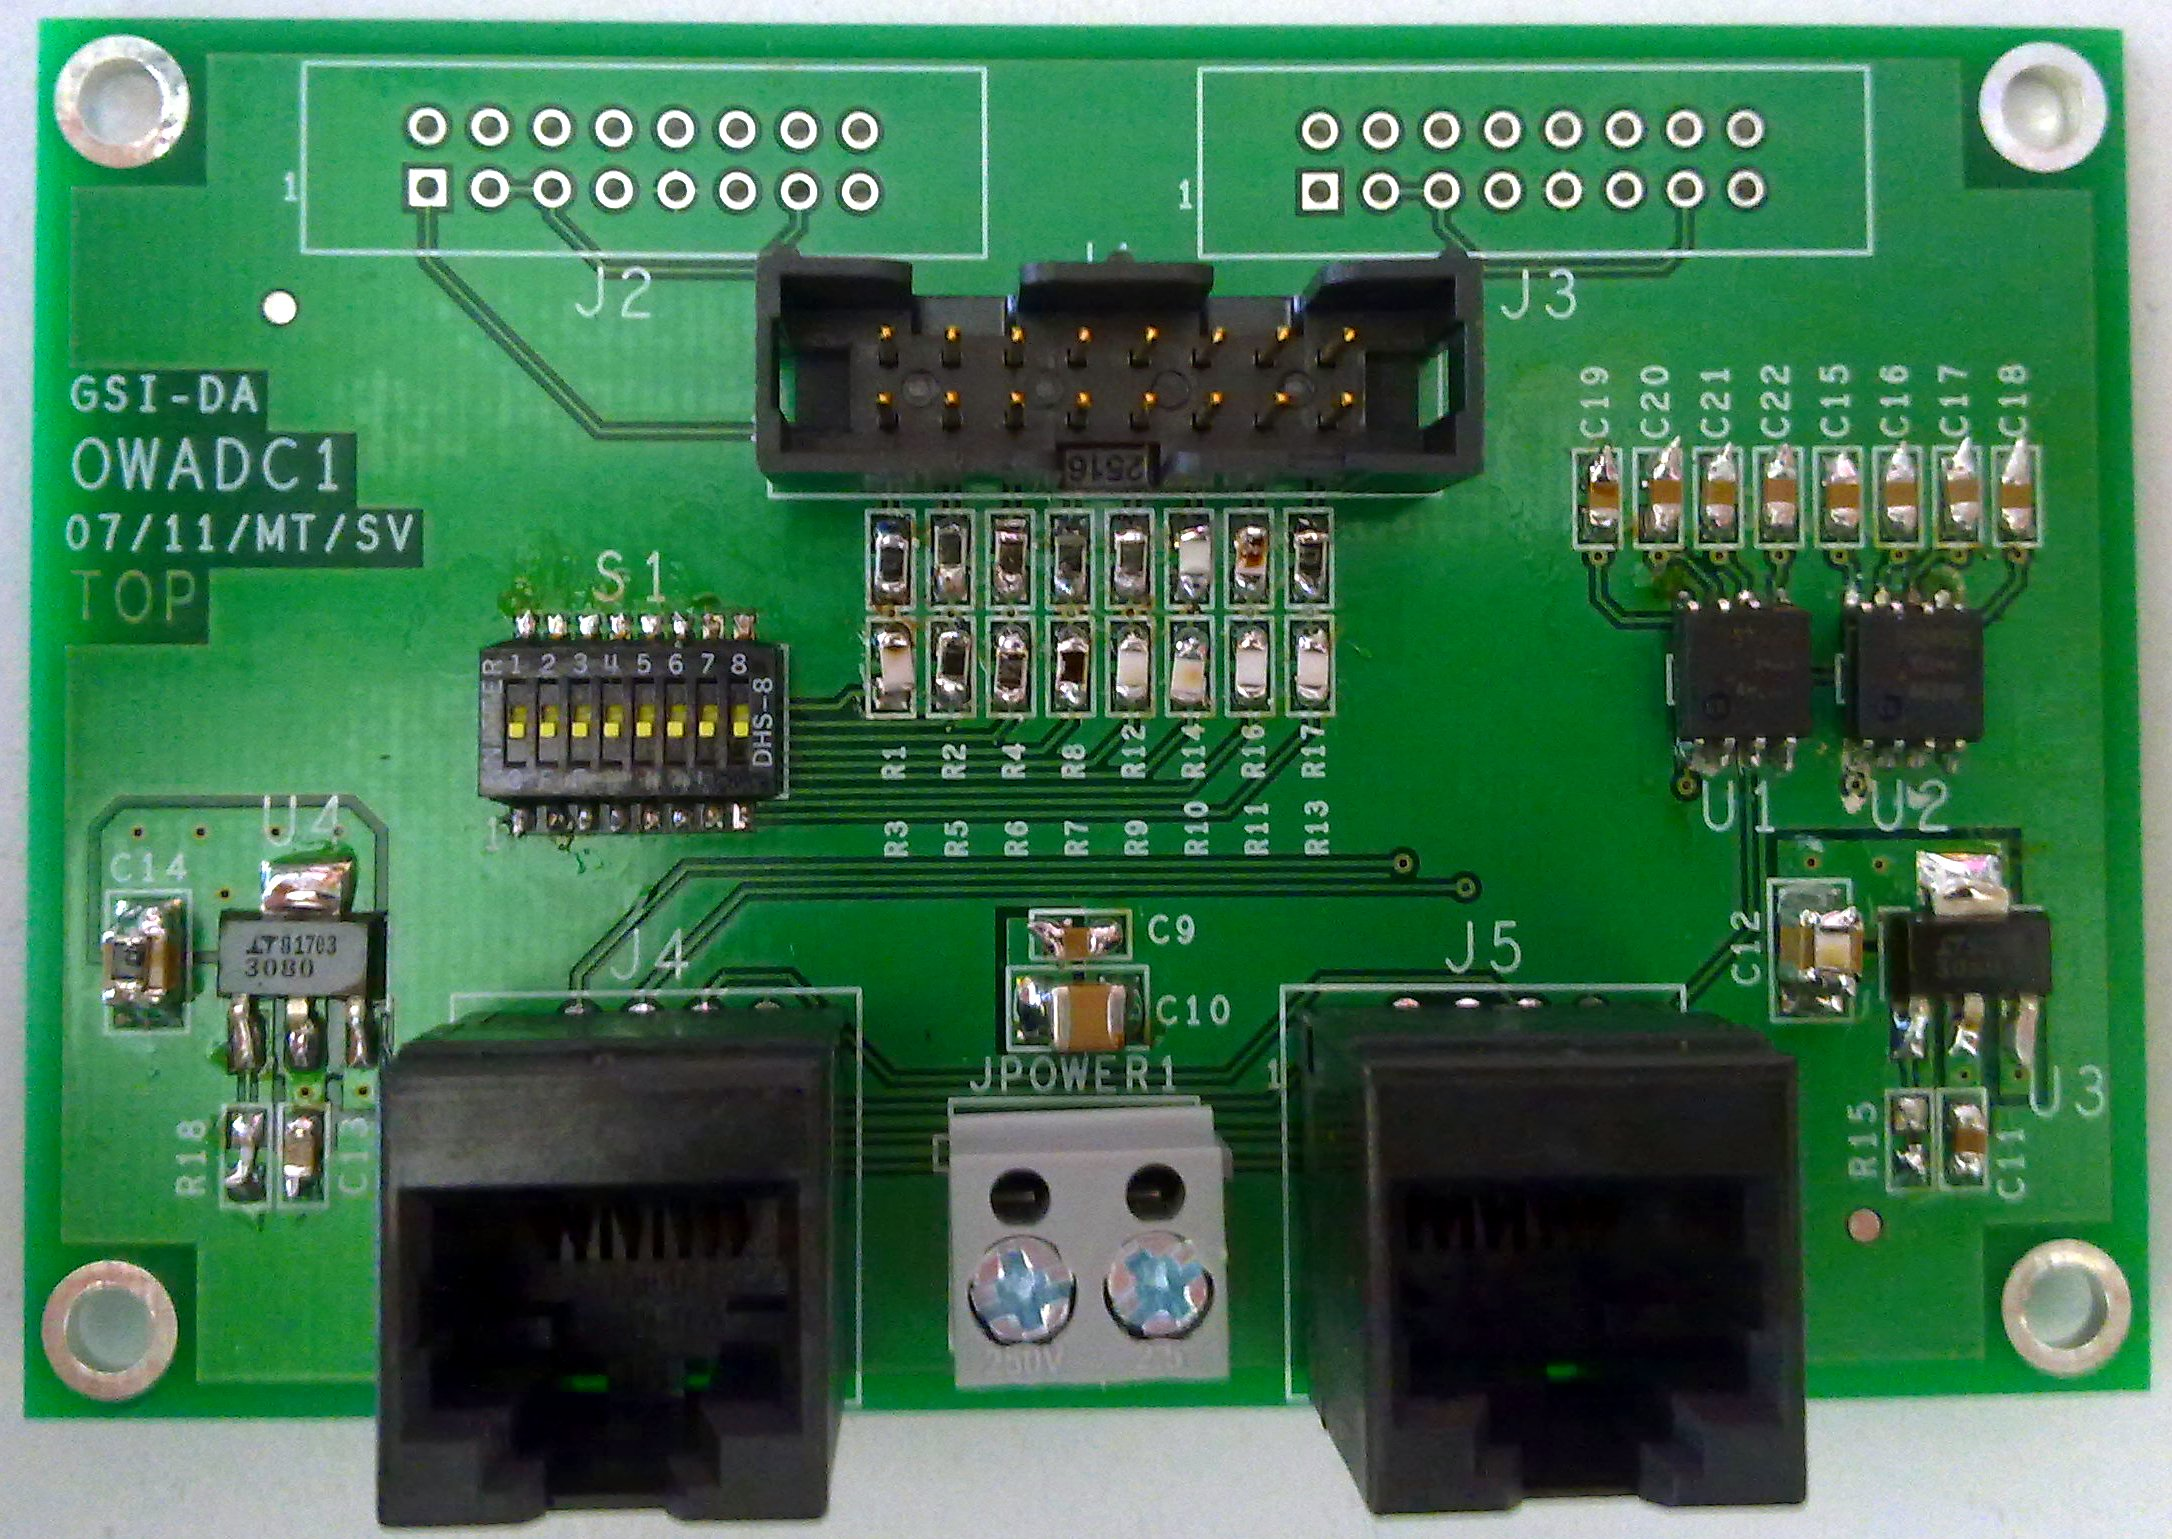 OWADC1 (w/o) connector J1/J2